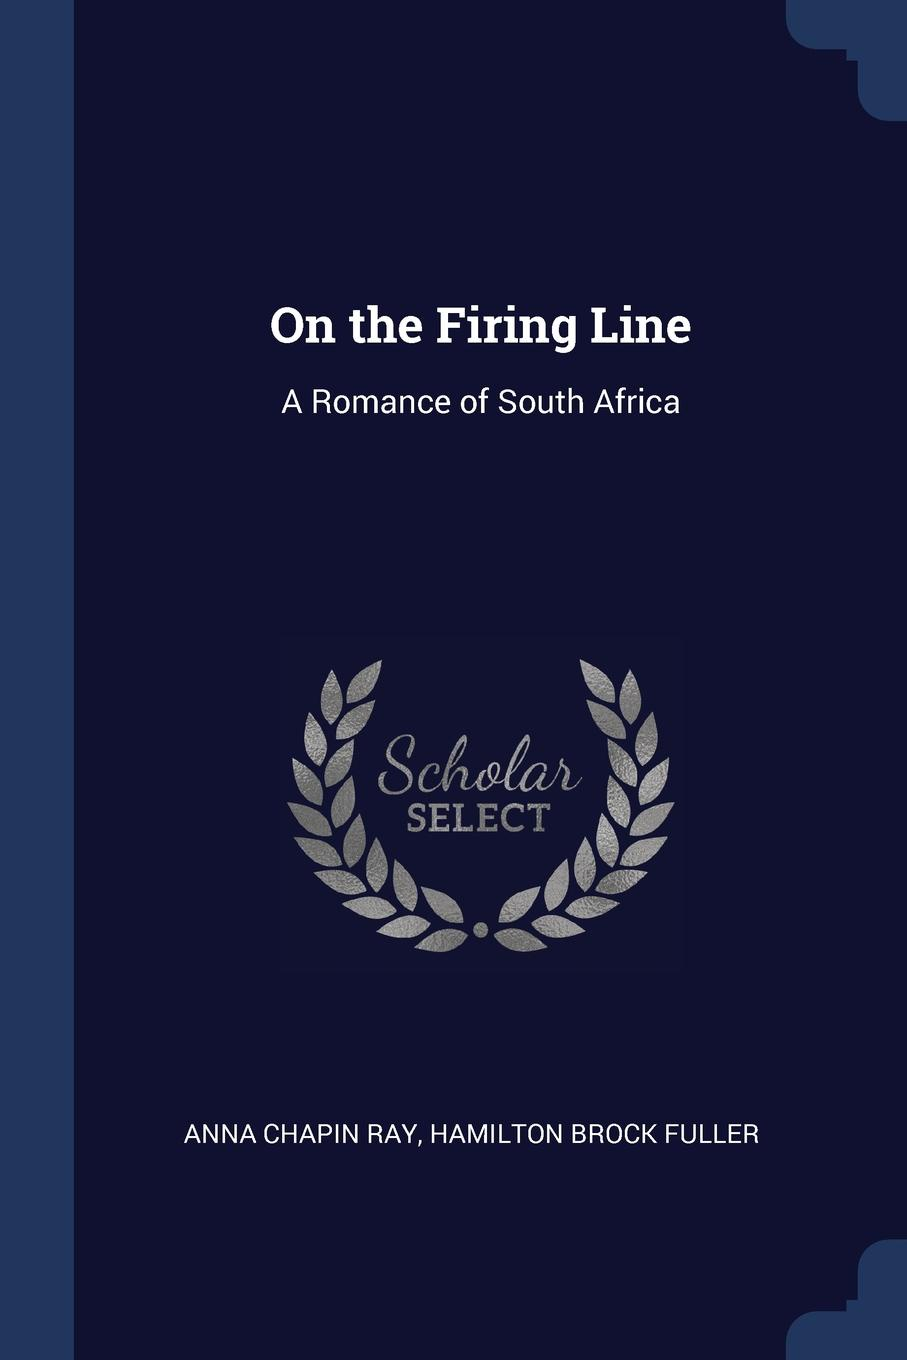 On the Firing Line. A Romance of South Africa. Anna Chapin Ray, Hamilton Brock Fuller